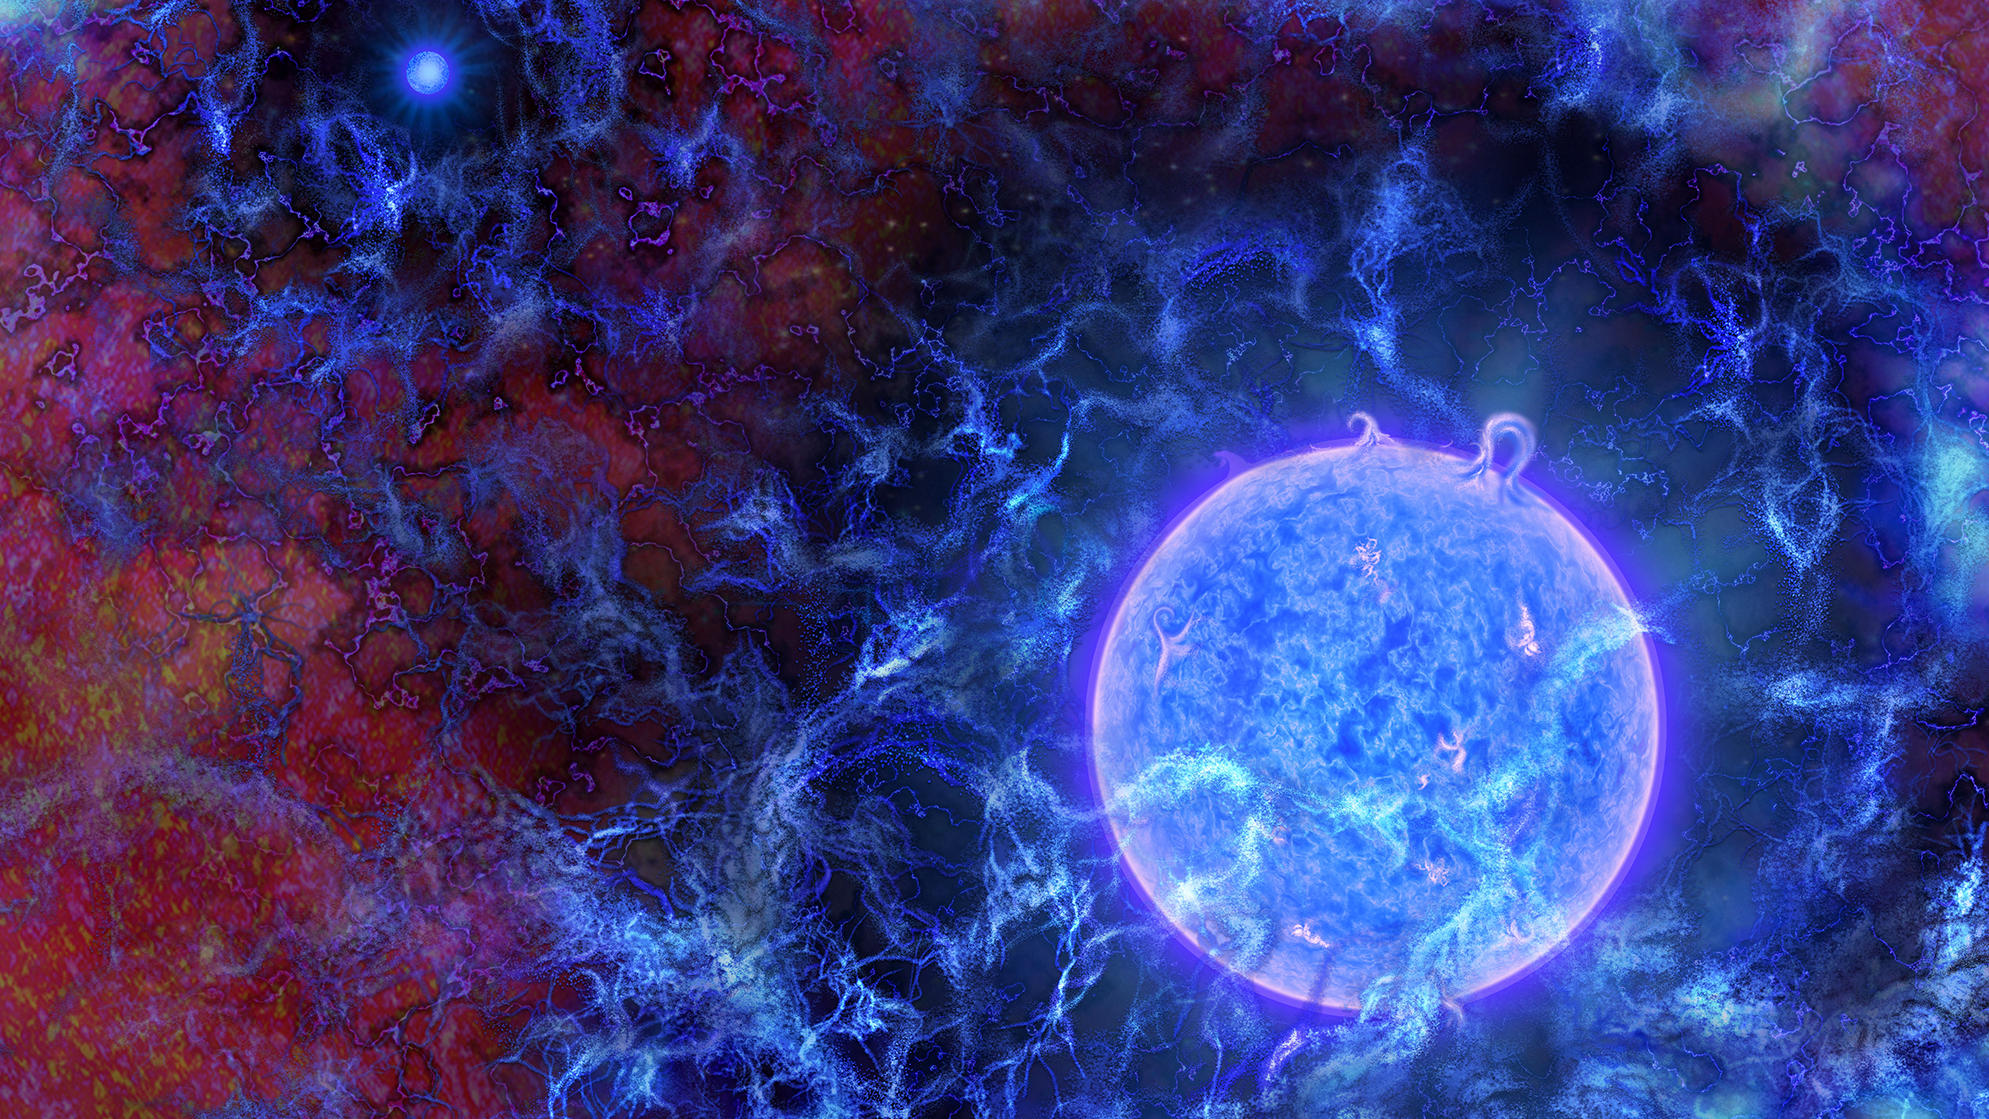 Scientists have detected a signal from the earliest stars